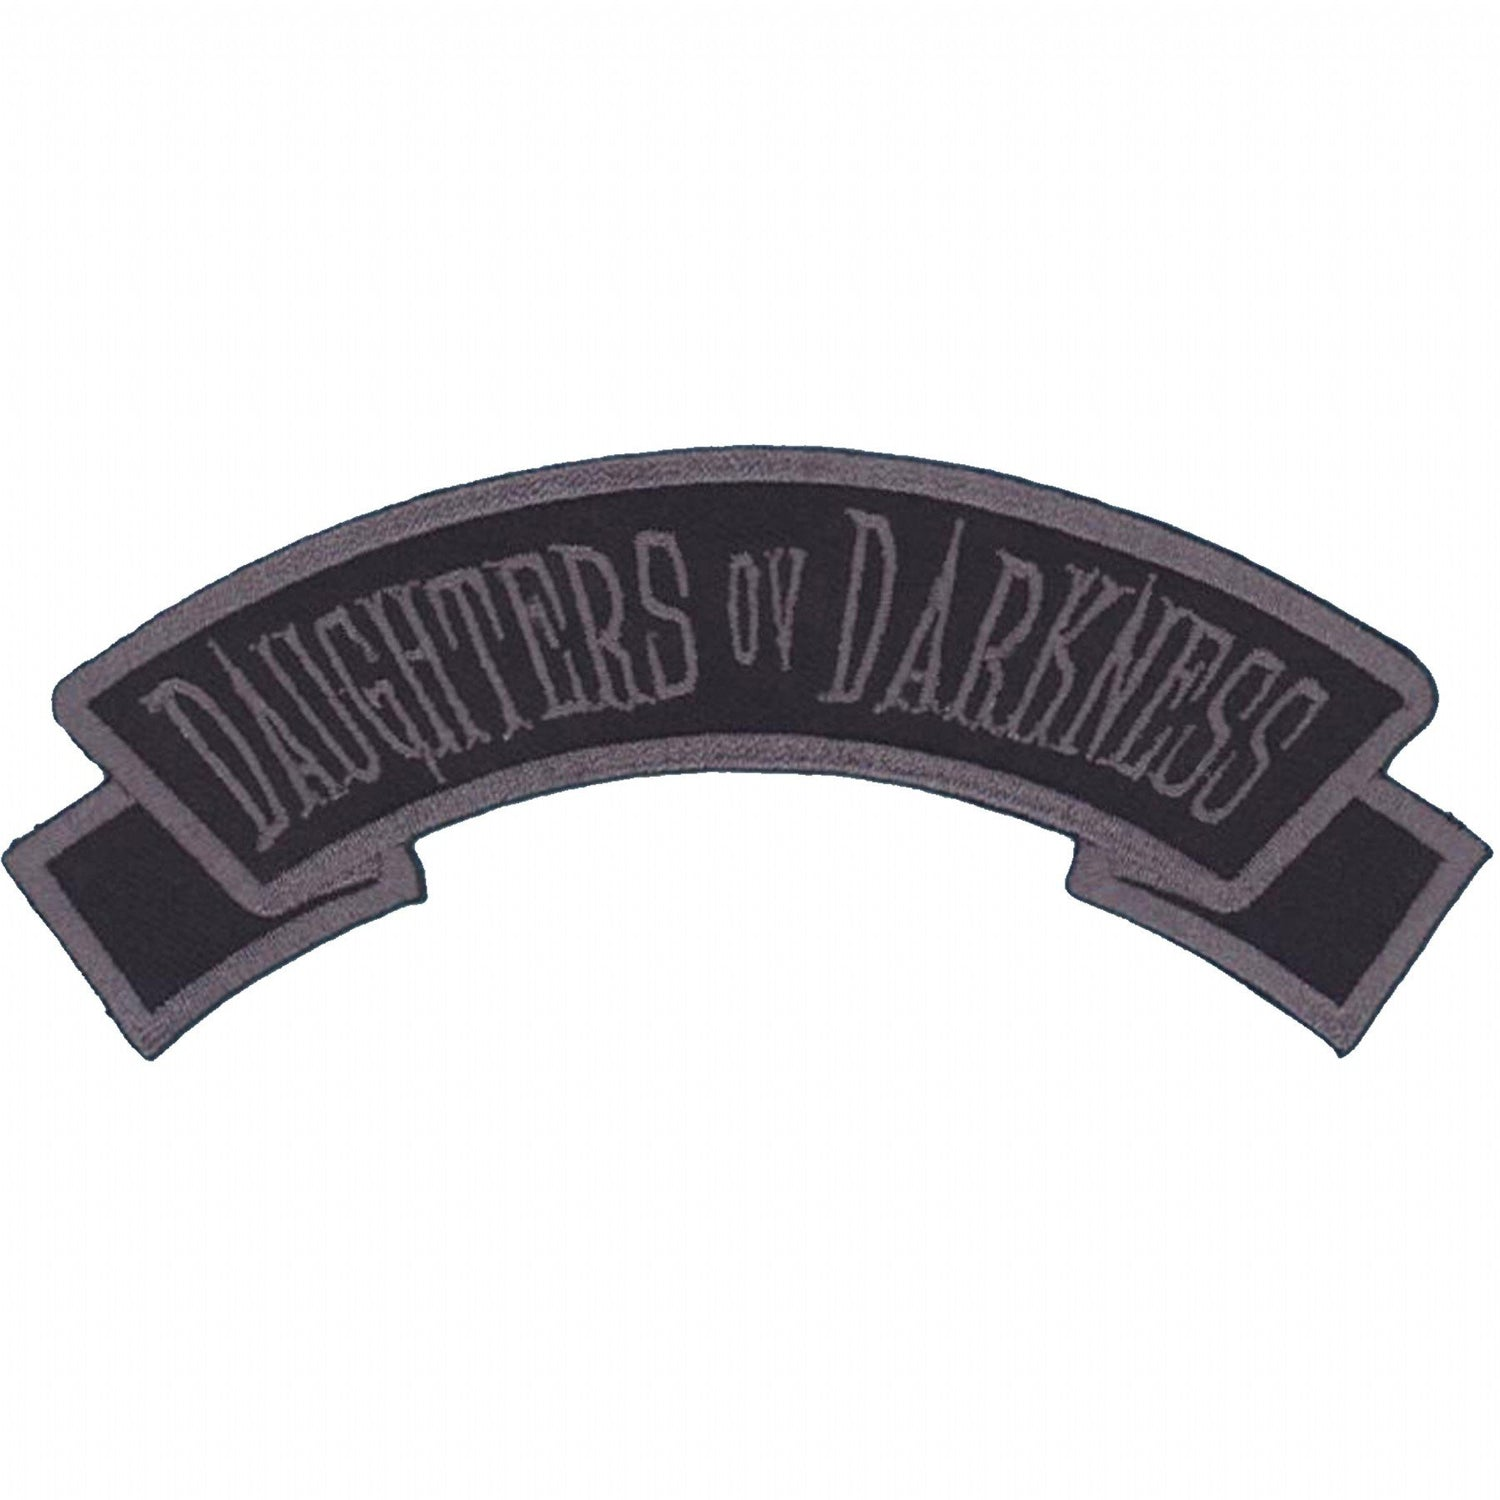 Daughters Ov Darkness Arch Patch